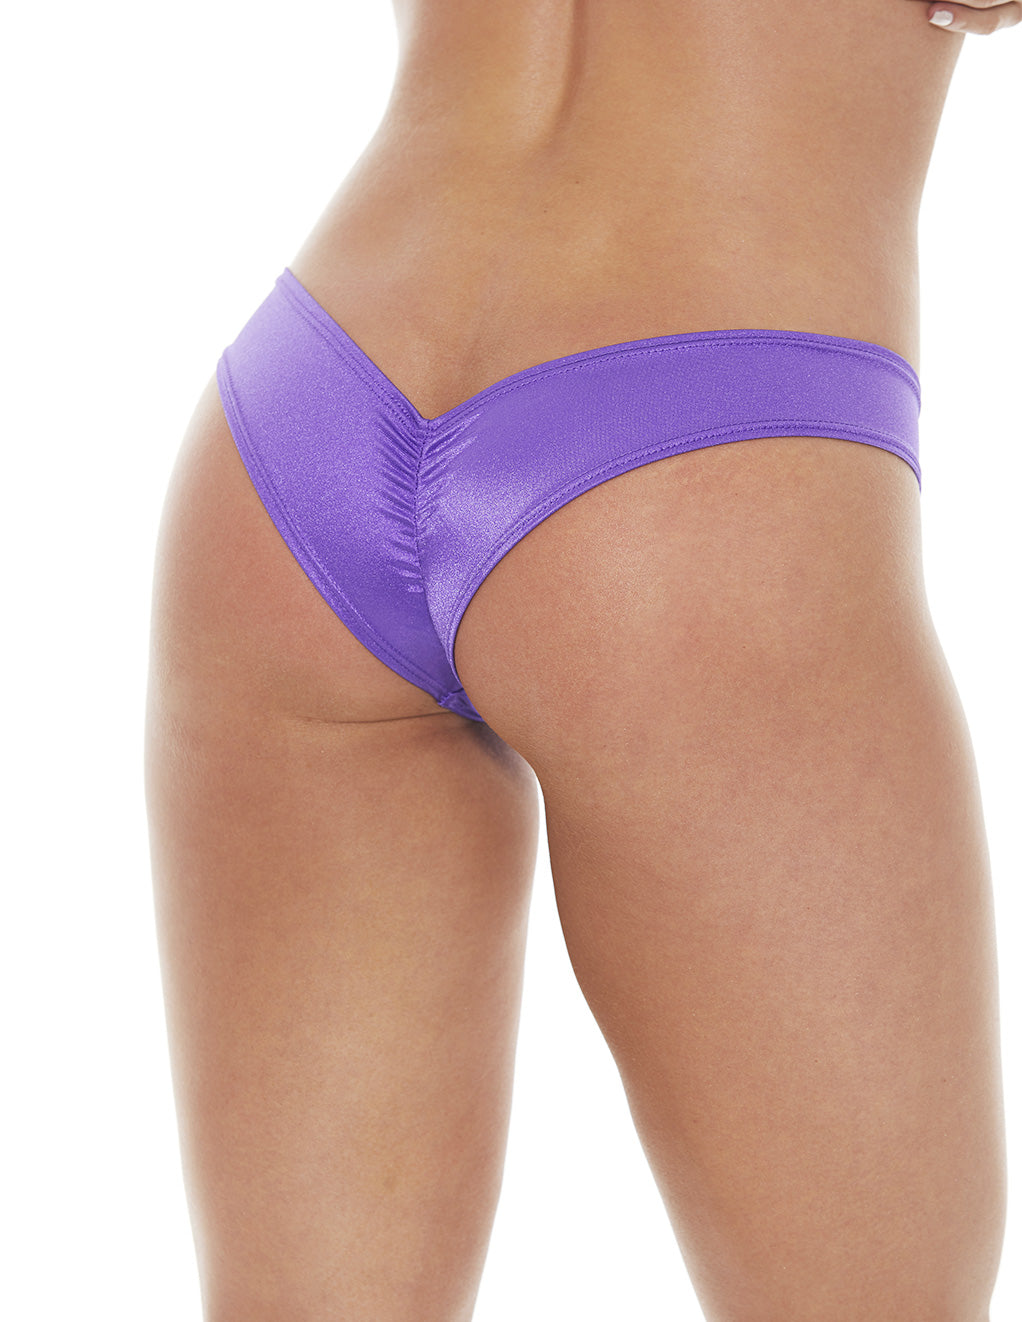 Bodyshotz Scrunch Back Boyshort Purple back